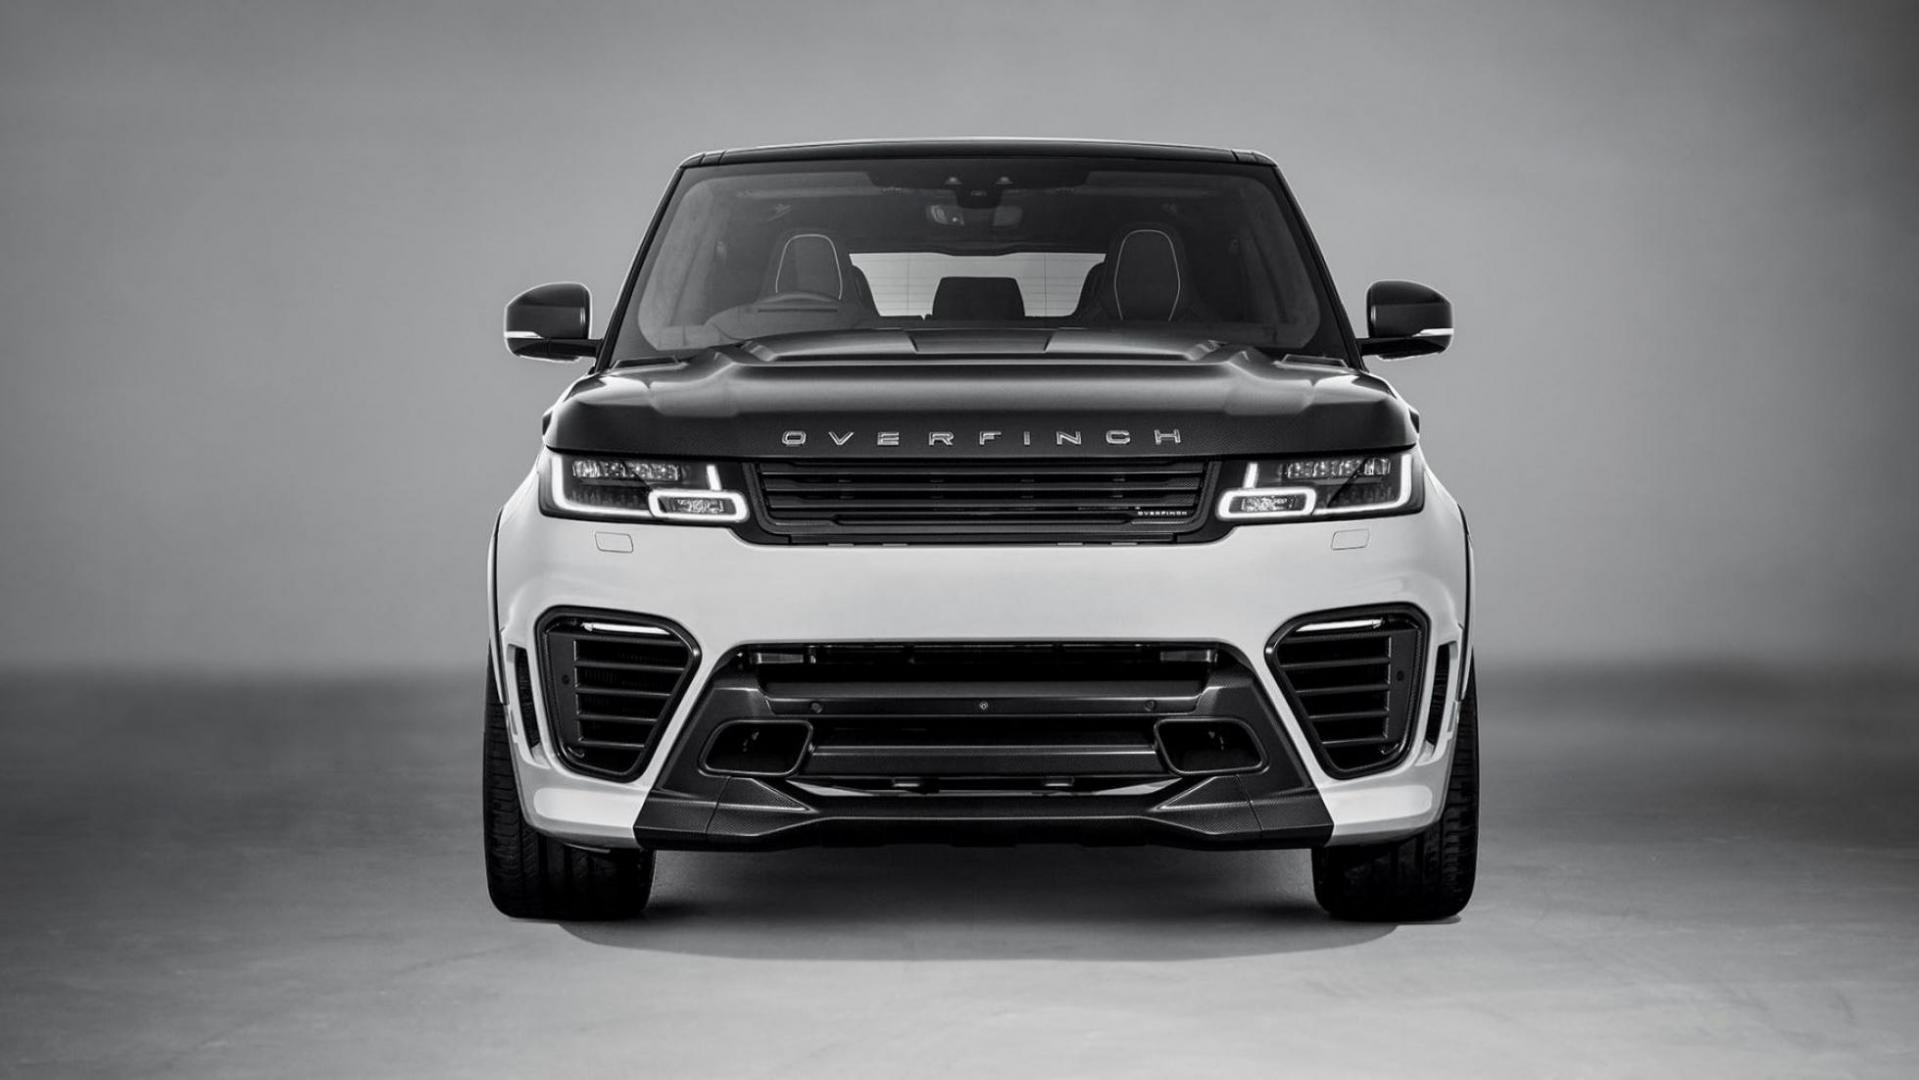 Overfinch Range Rover Sport SVR Supersport